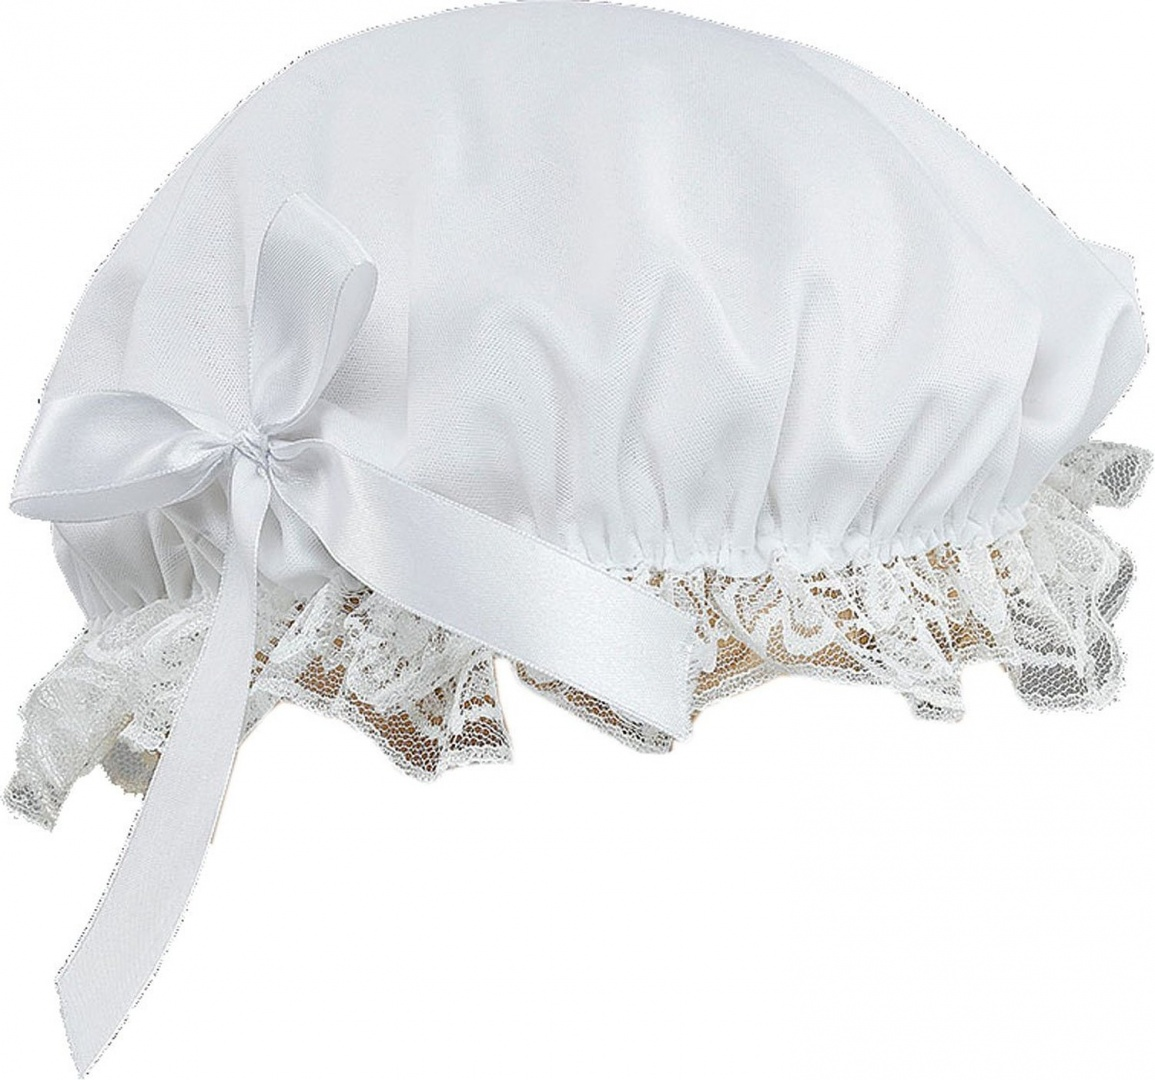 05752ef54080c Adult Fancy Club Party Maid Cleaner Victorian Lady Bonnet Hat With ...